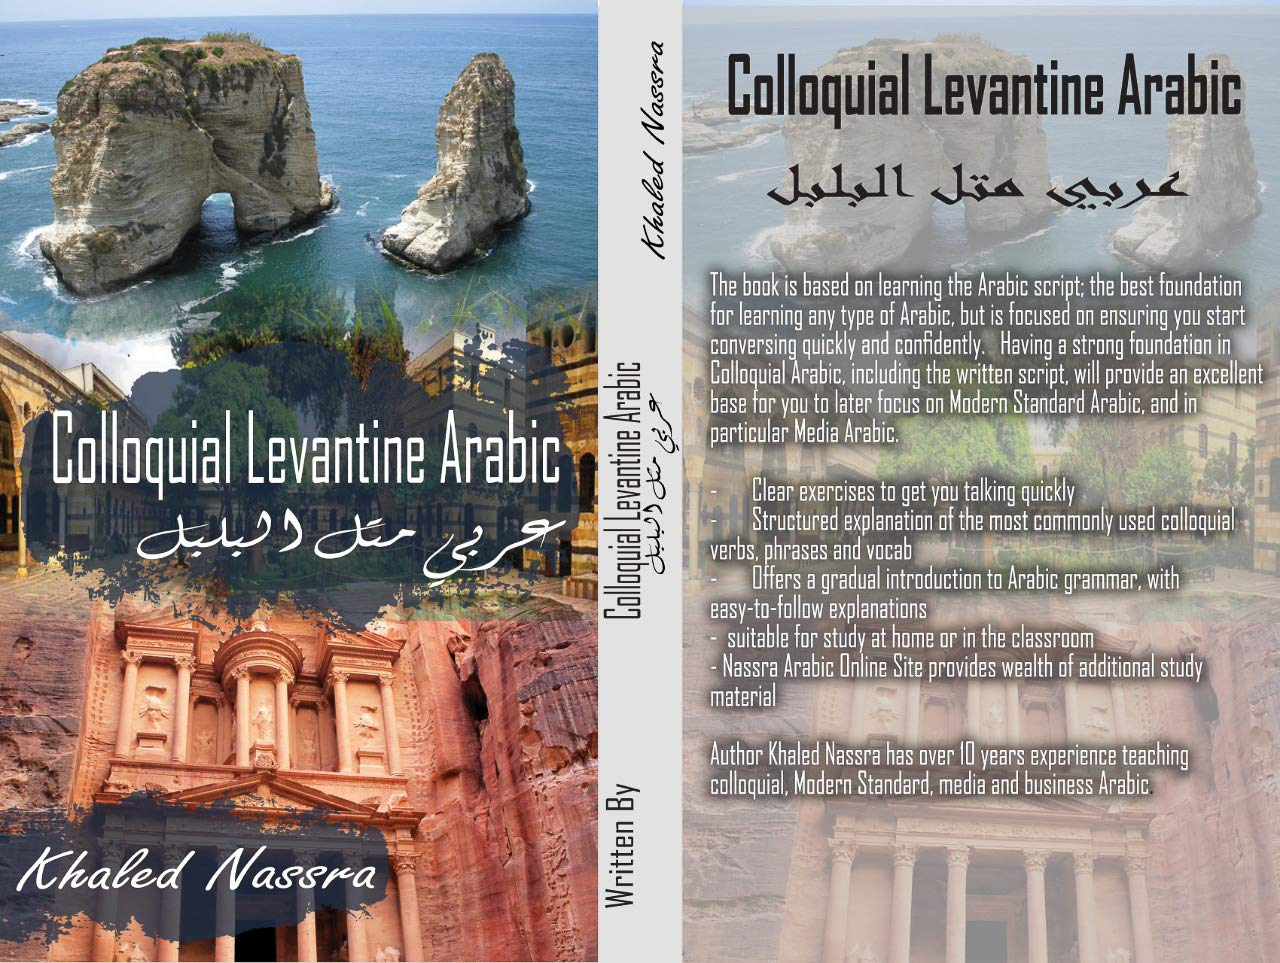 Colloquial Levantine Arabic : Complete Arabic Beginner to Upper-Intermediate Course: Learn to read write and speak: Nassra Arabic Method (English Edition)